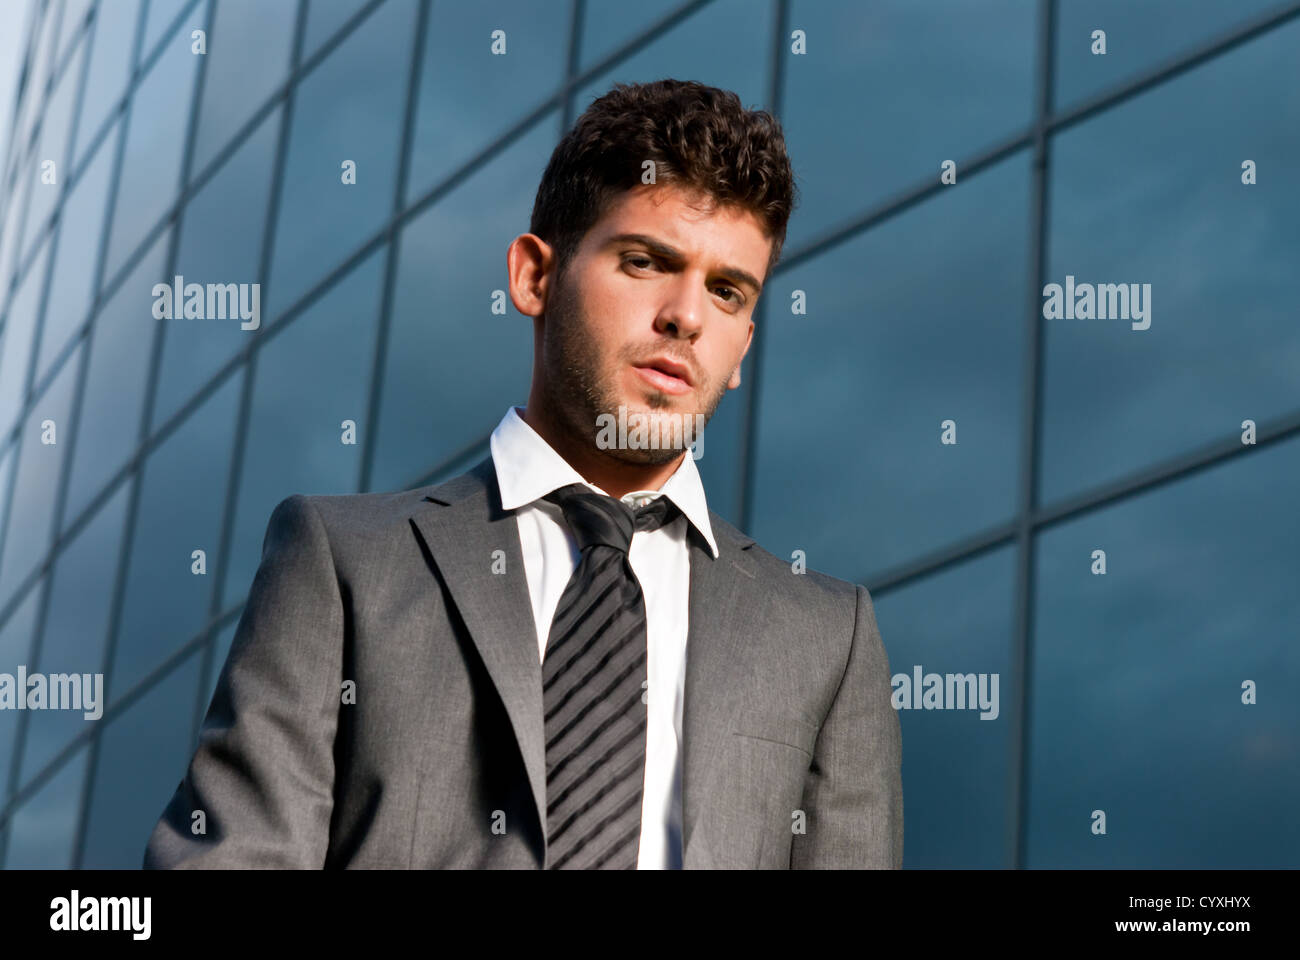 Young businessman looking to camera on modern building background Stock Photo